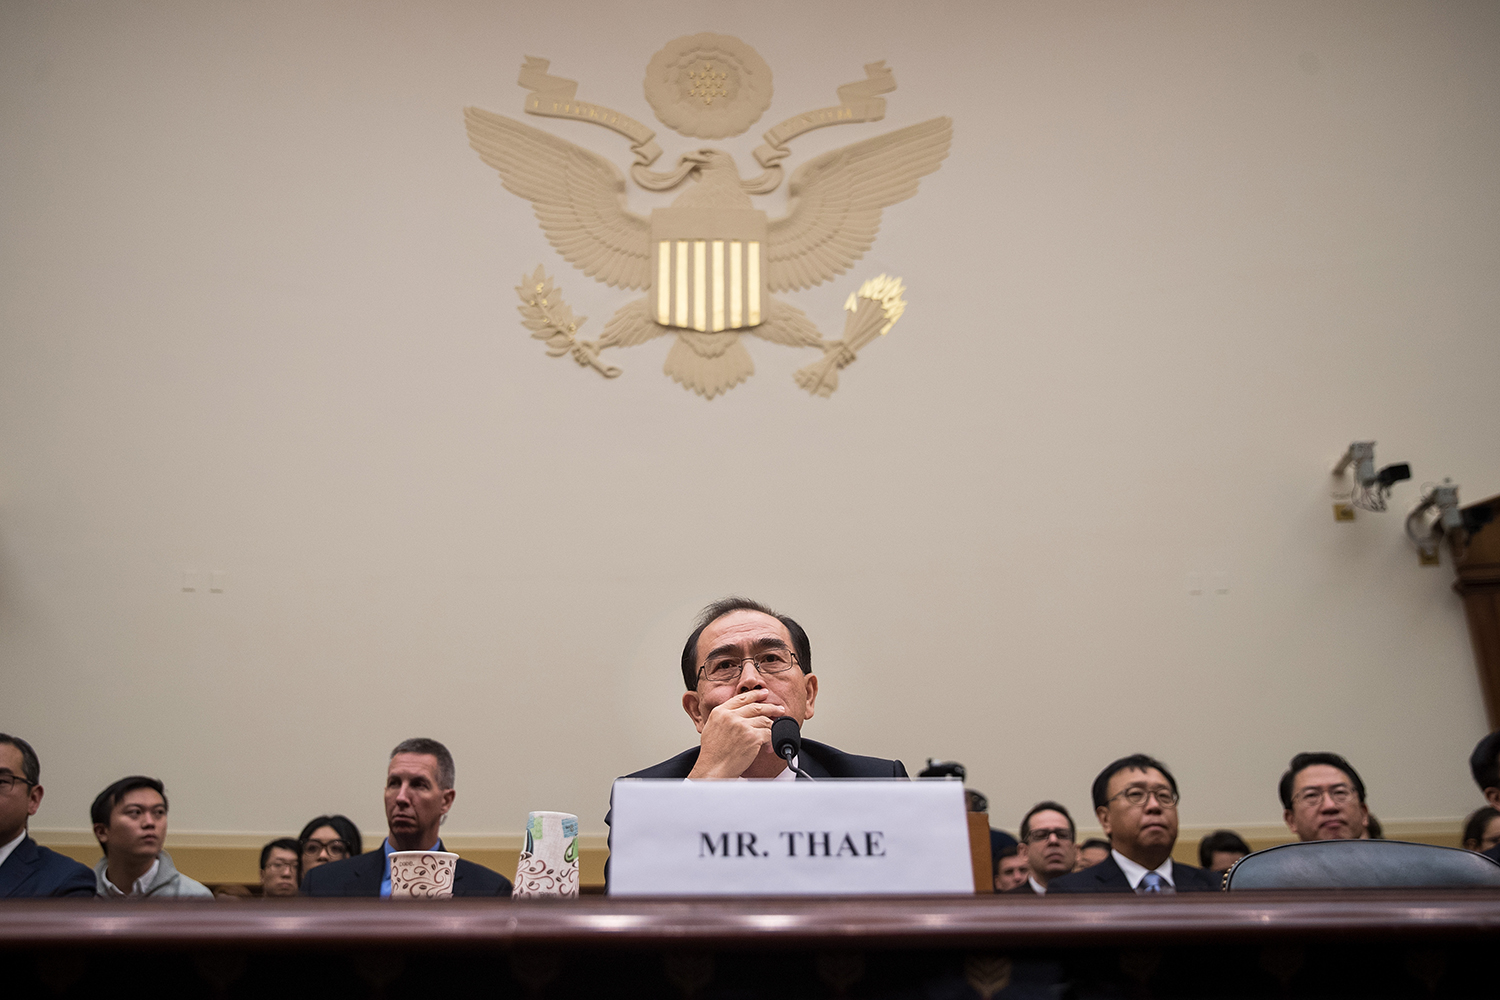 Thae testifies during a House Foreign Affairs Committee hearing on Capitol Hill in Washington, D.C., on Nov. 1, 2017.